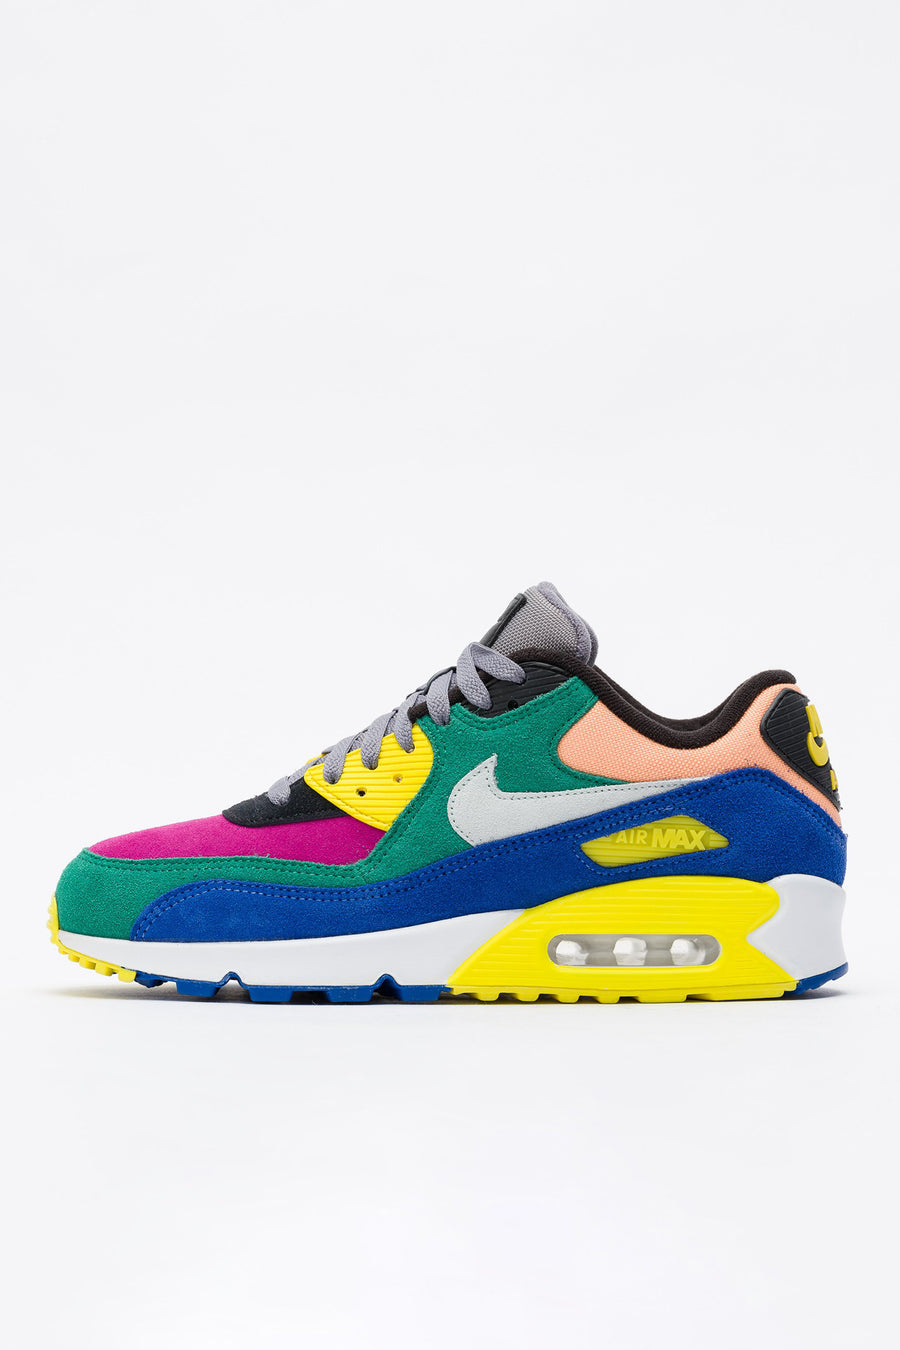 sale retailer 4a032 af4bb Air Max 90 QS in Lucid Green/Grey